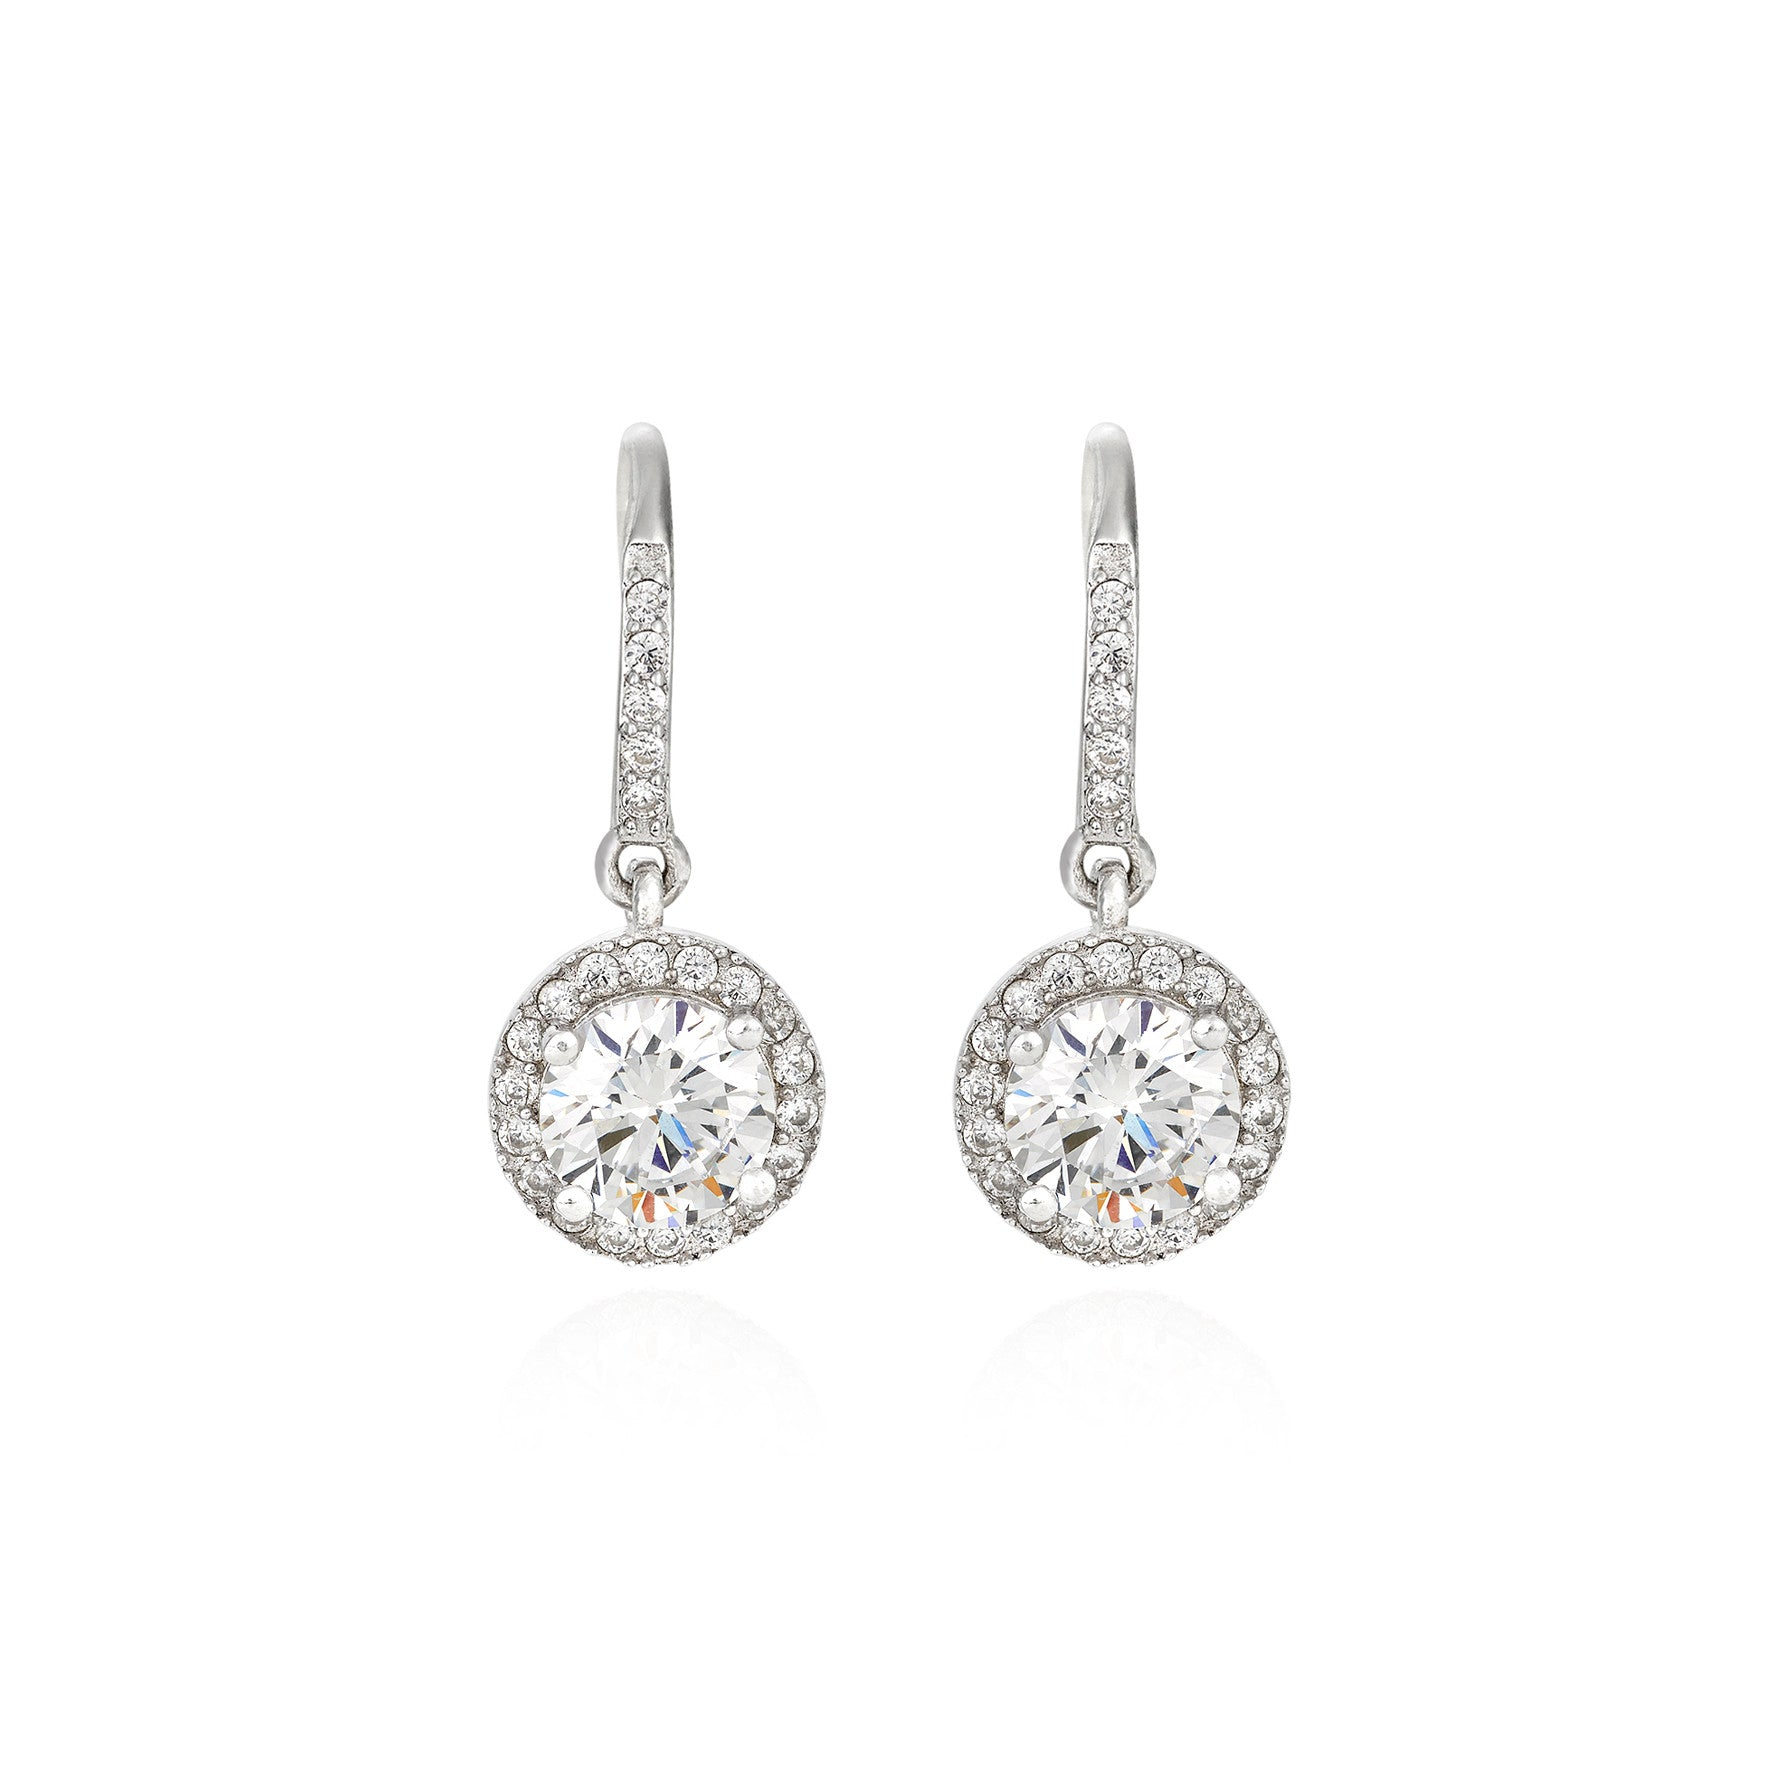 Round Brilliant Solitaire with Halo Drop earrings